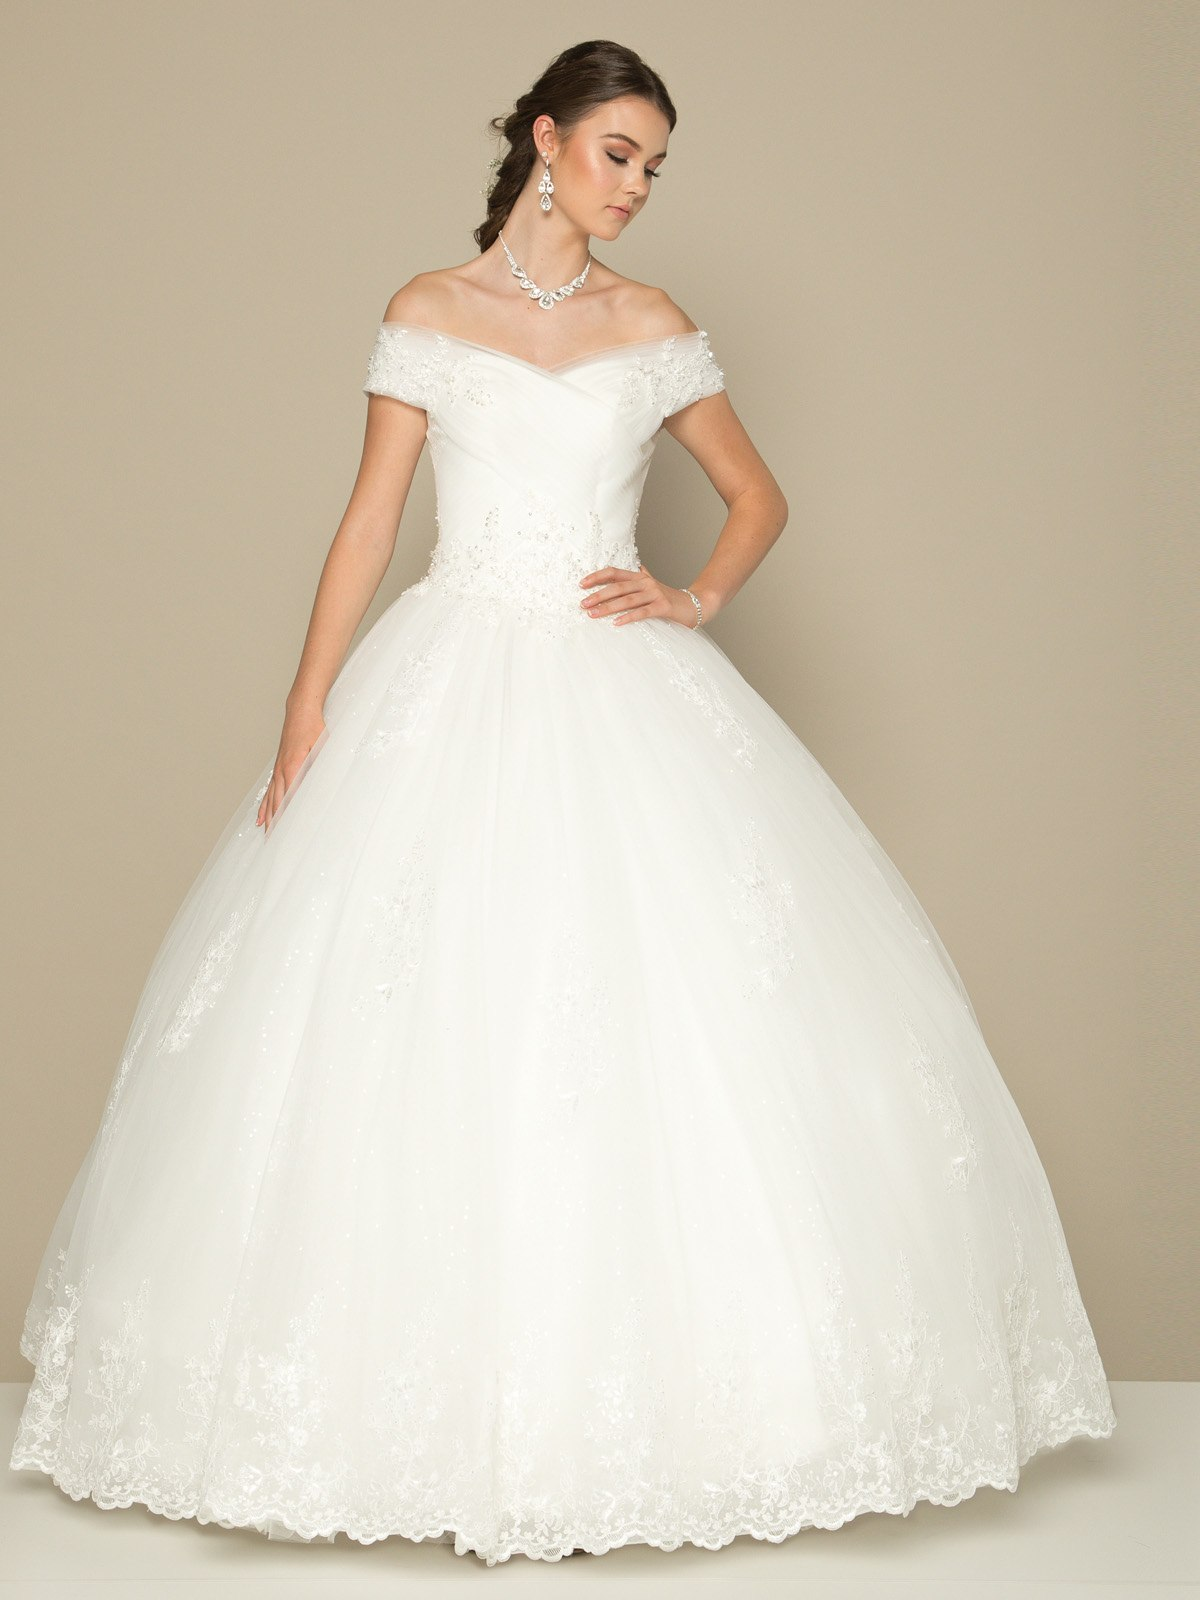 Juliet 378 Off The Shoulder White Wedding Ball Gown Lace Up Back